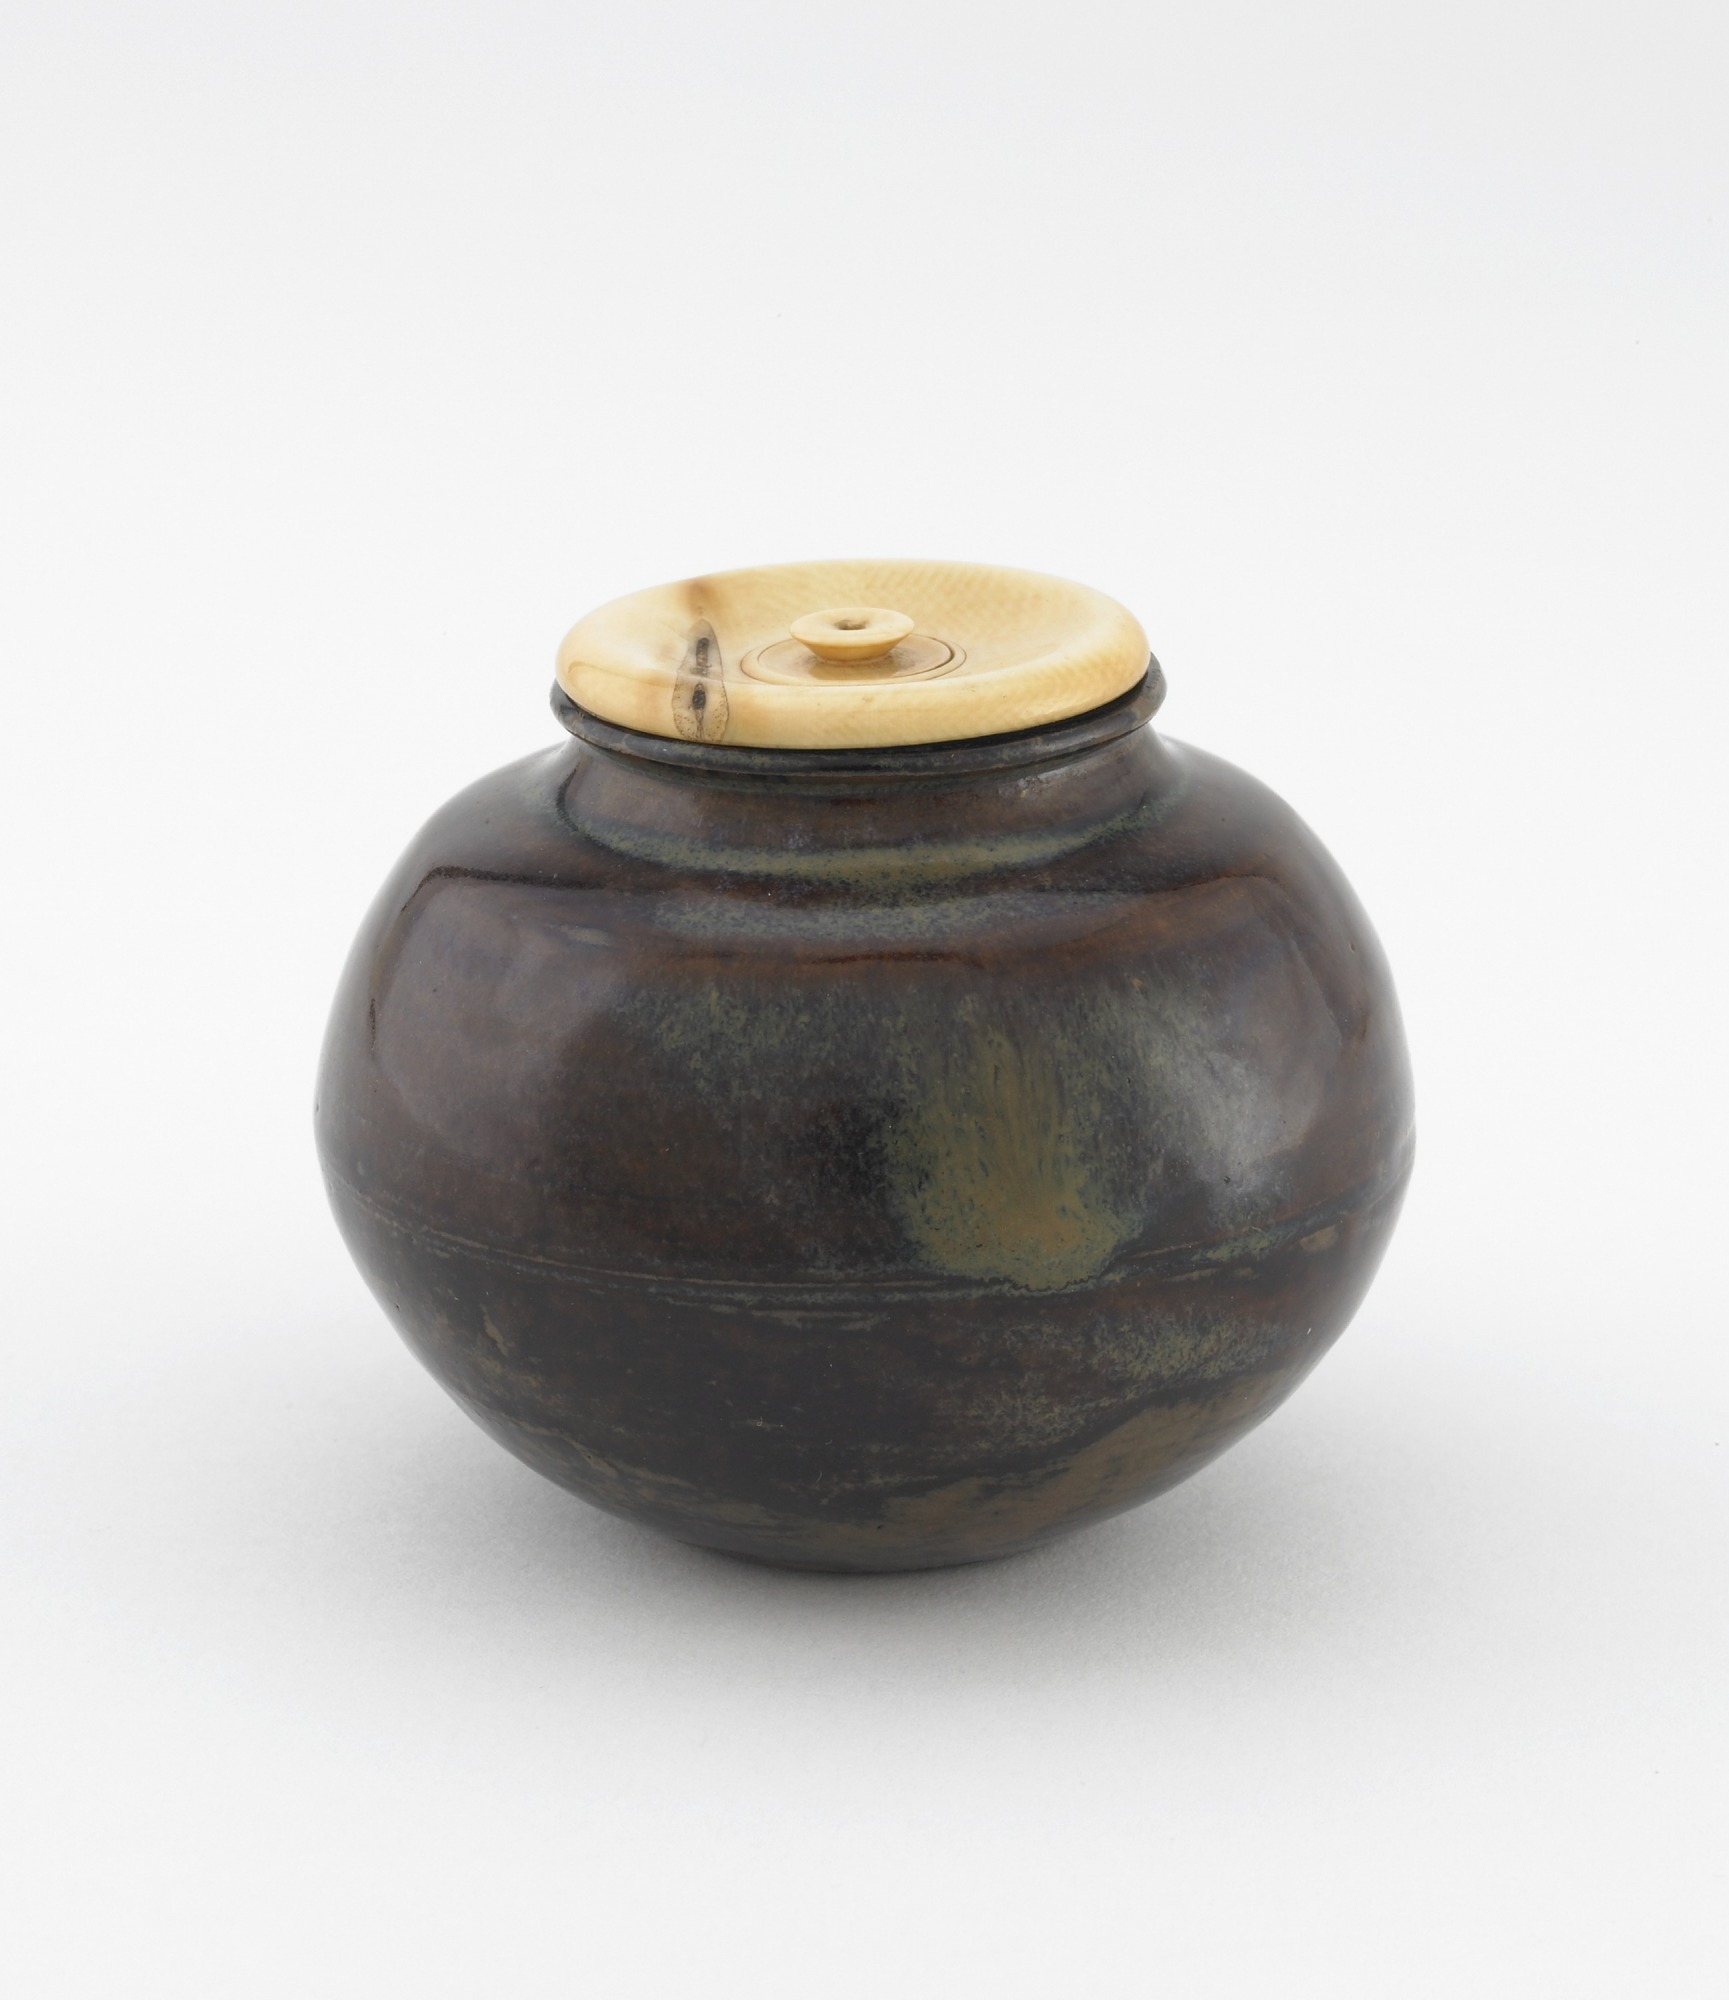 Karamono tea caddy, bunrin type